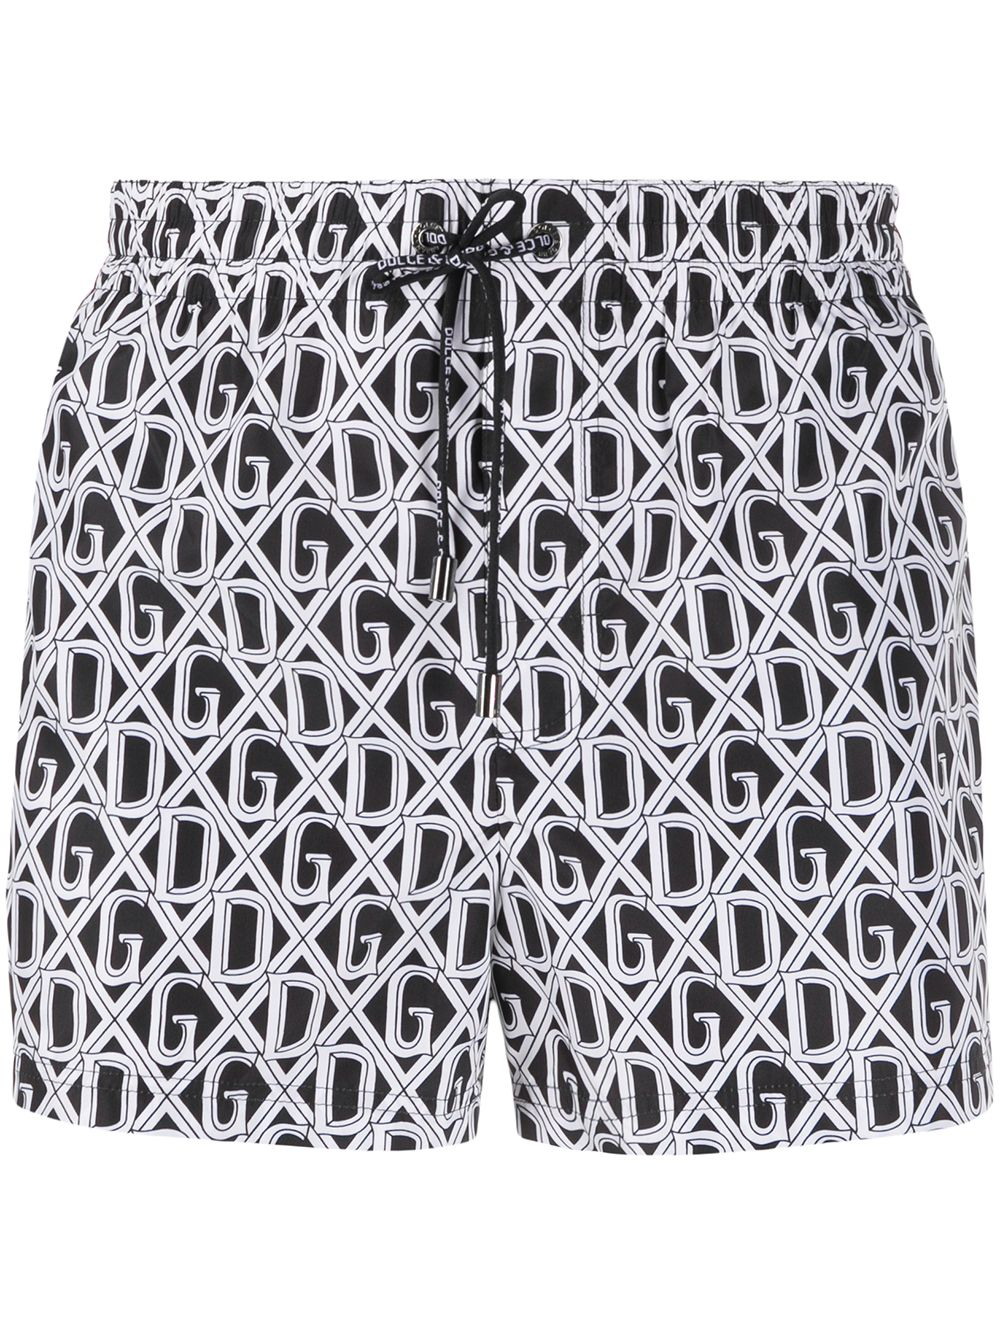 polyester black and white swimshorts with D&G monogram print DOLCE & GABBANA |  | M4A06T-HSMH6HN67C